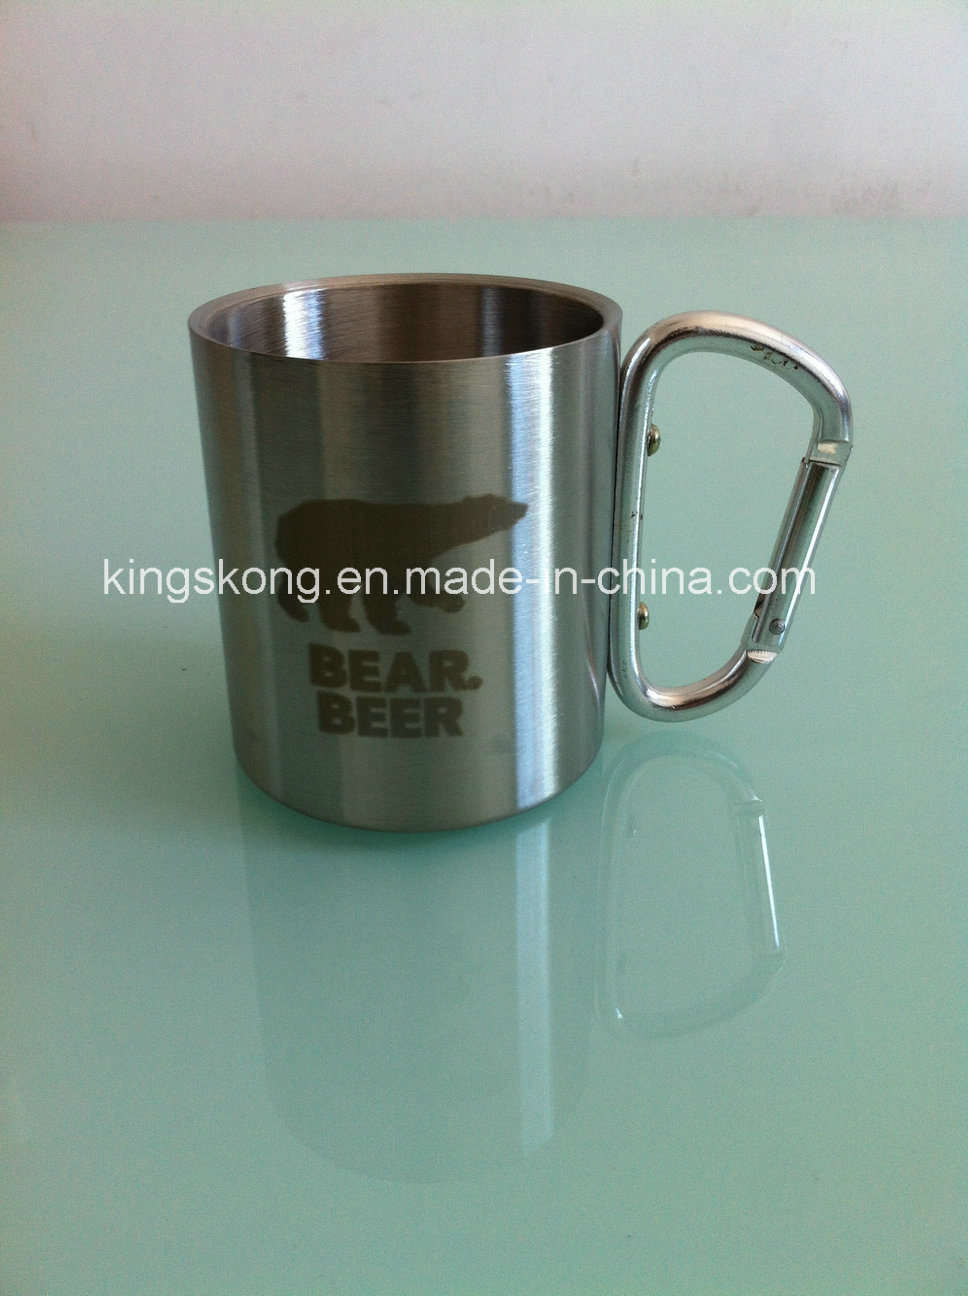 China Favorable Price Stainless Steel Mug with Carabiner Handle ...